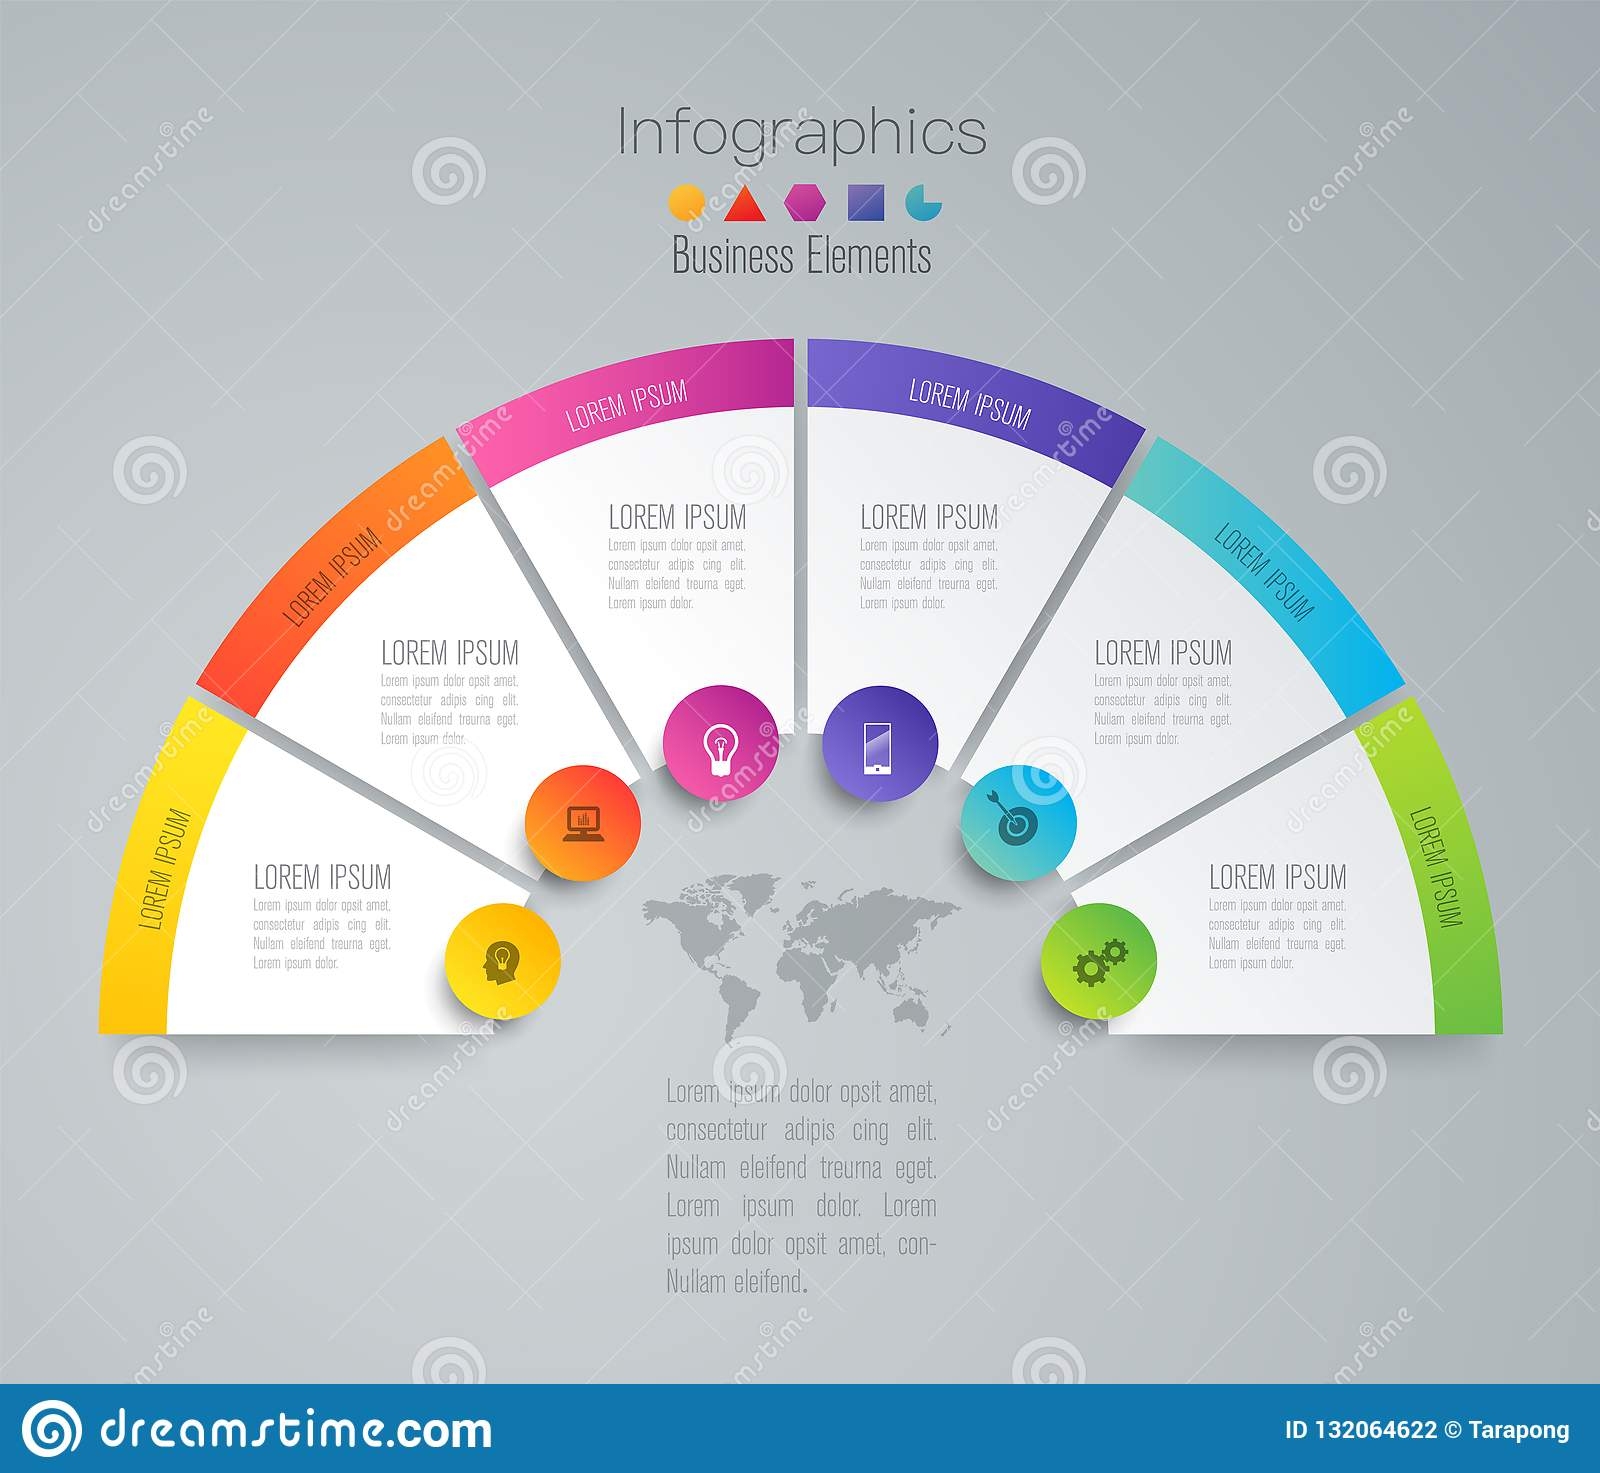 Infographics design vector and business icons with 6 options.